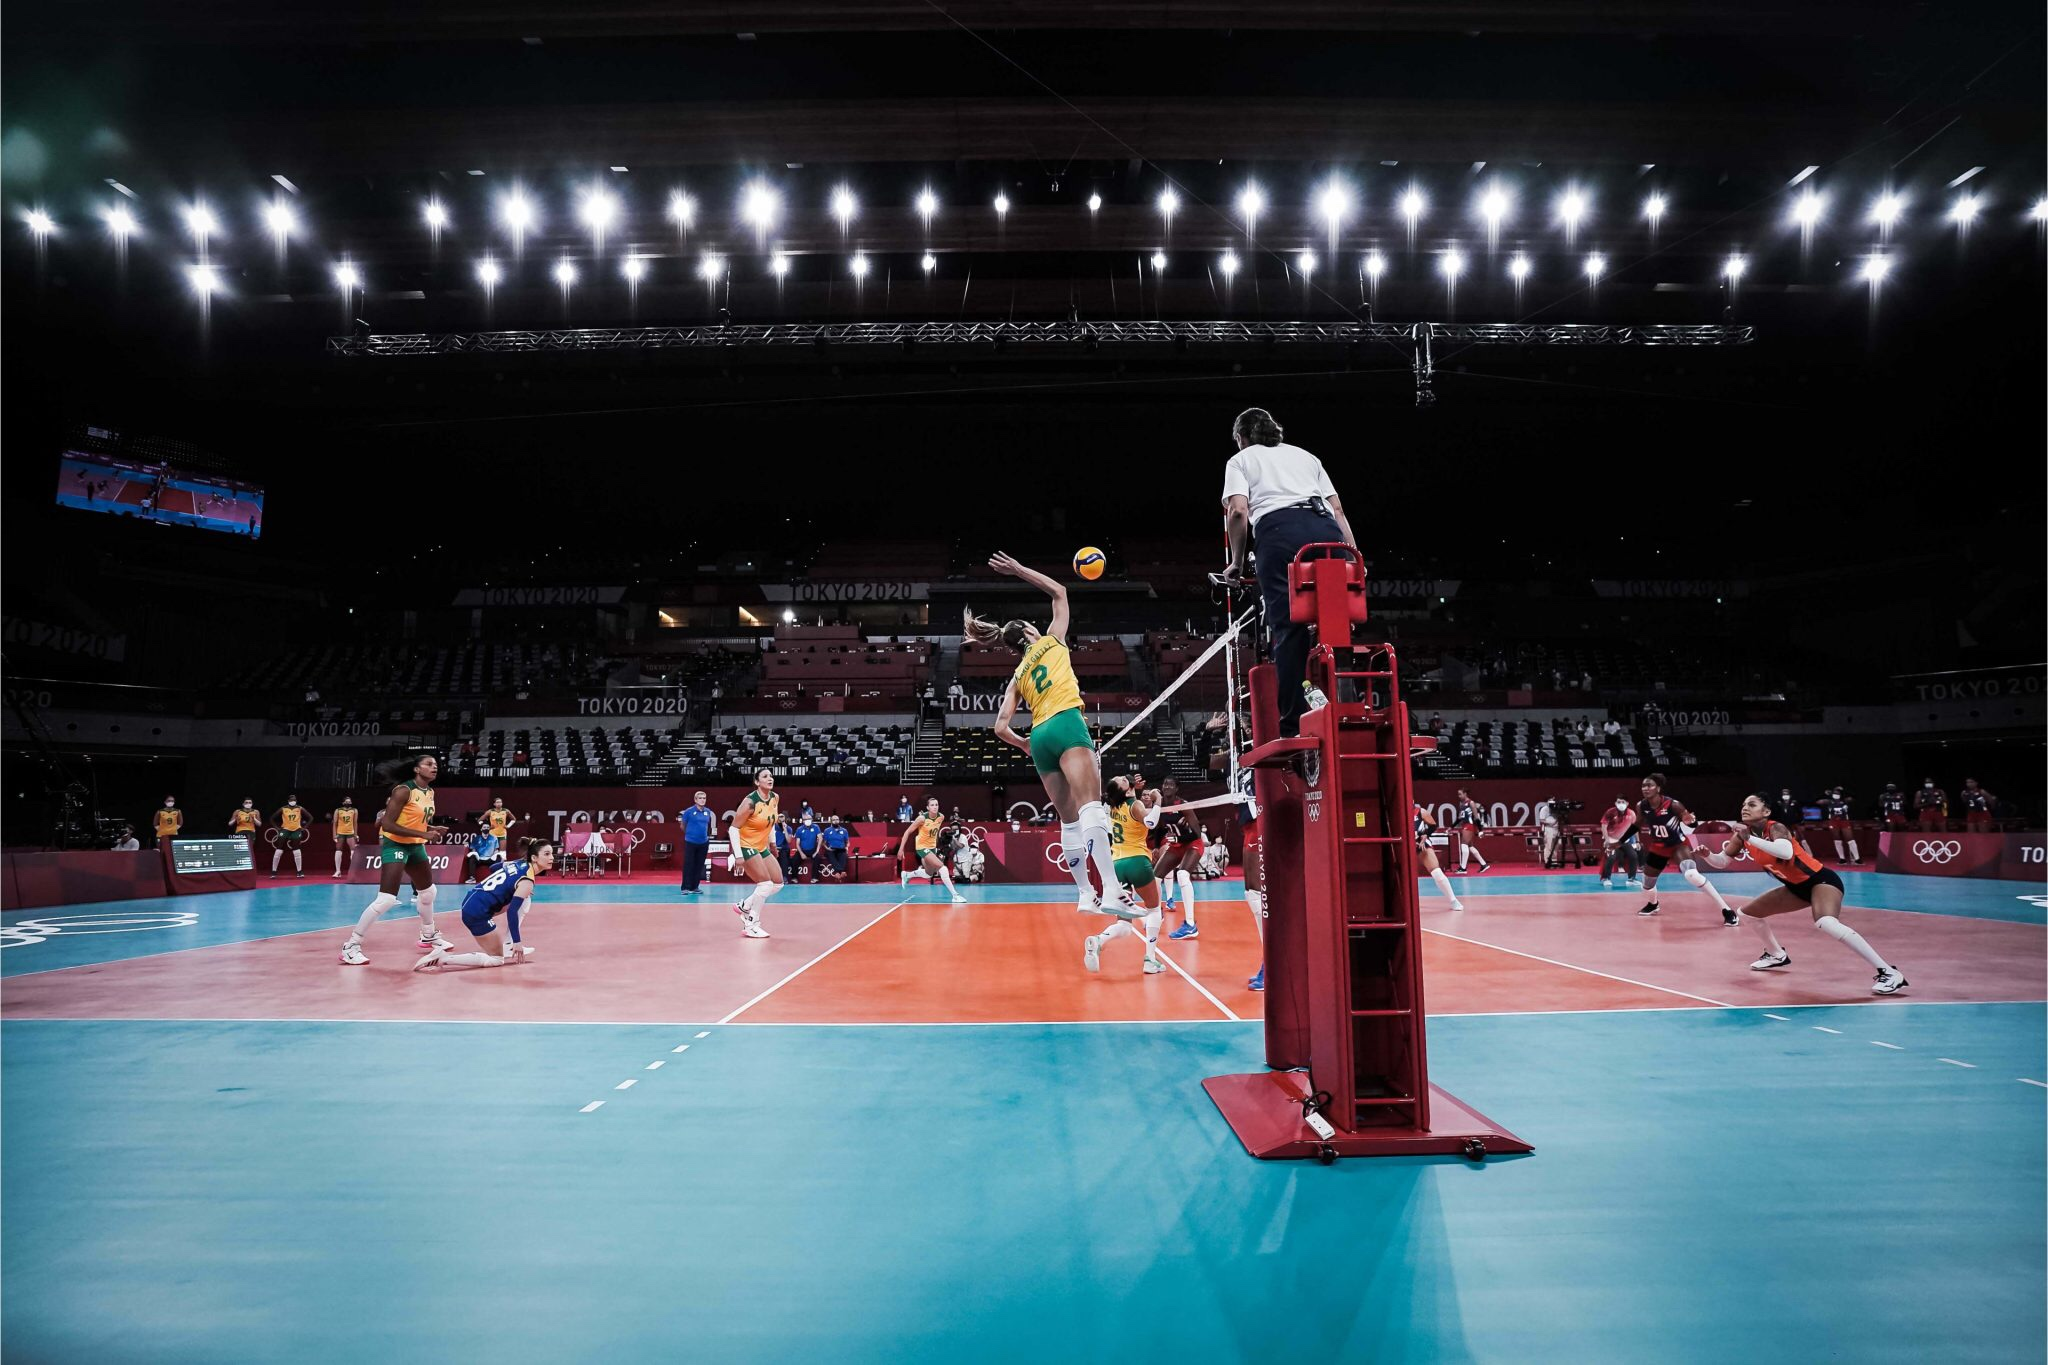 Tokyo 2020 Women: Brazil and Dominican Republic set new record for longest match in Olympic history!